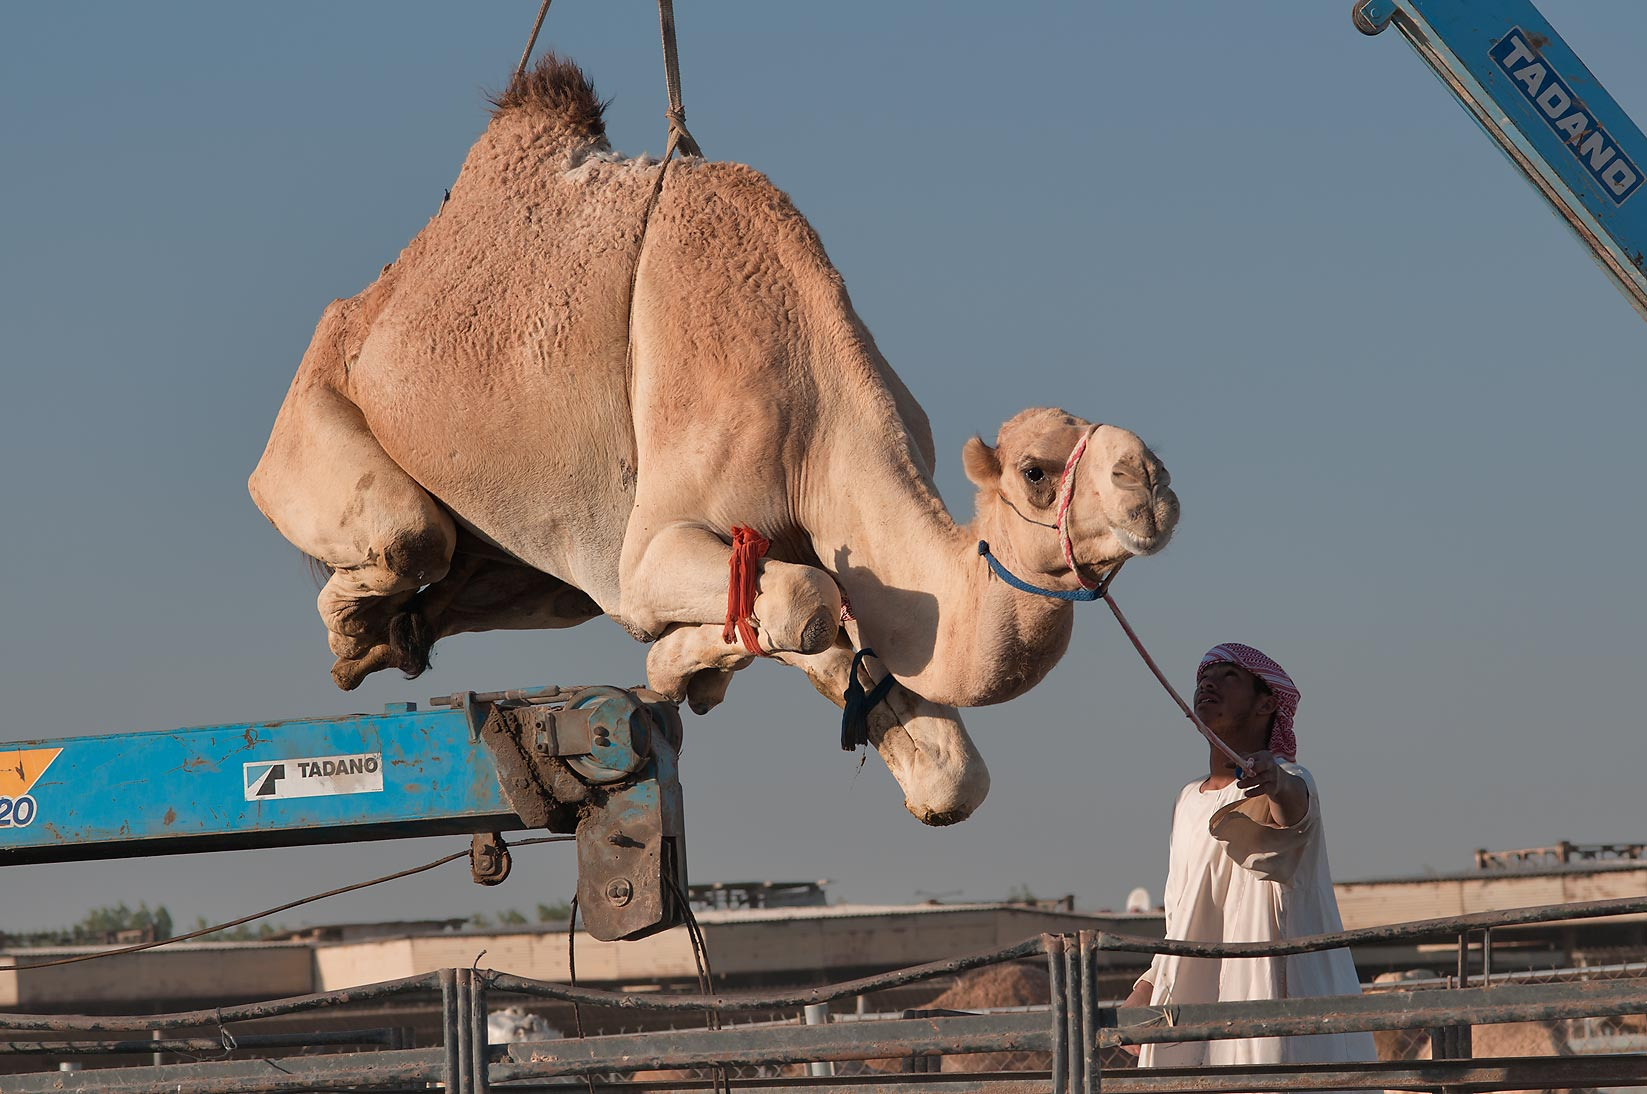 Docile camel suspended by crane in Camel Market...Wholesale Markets area. Doha, Qatar